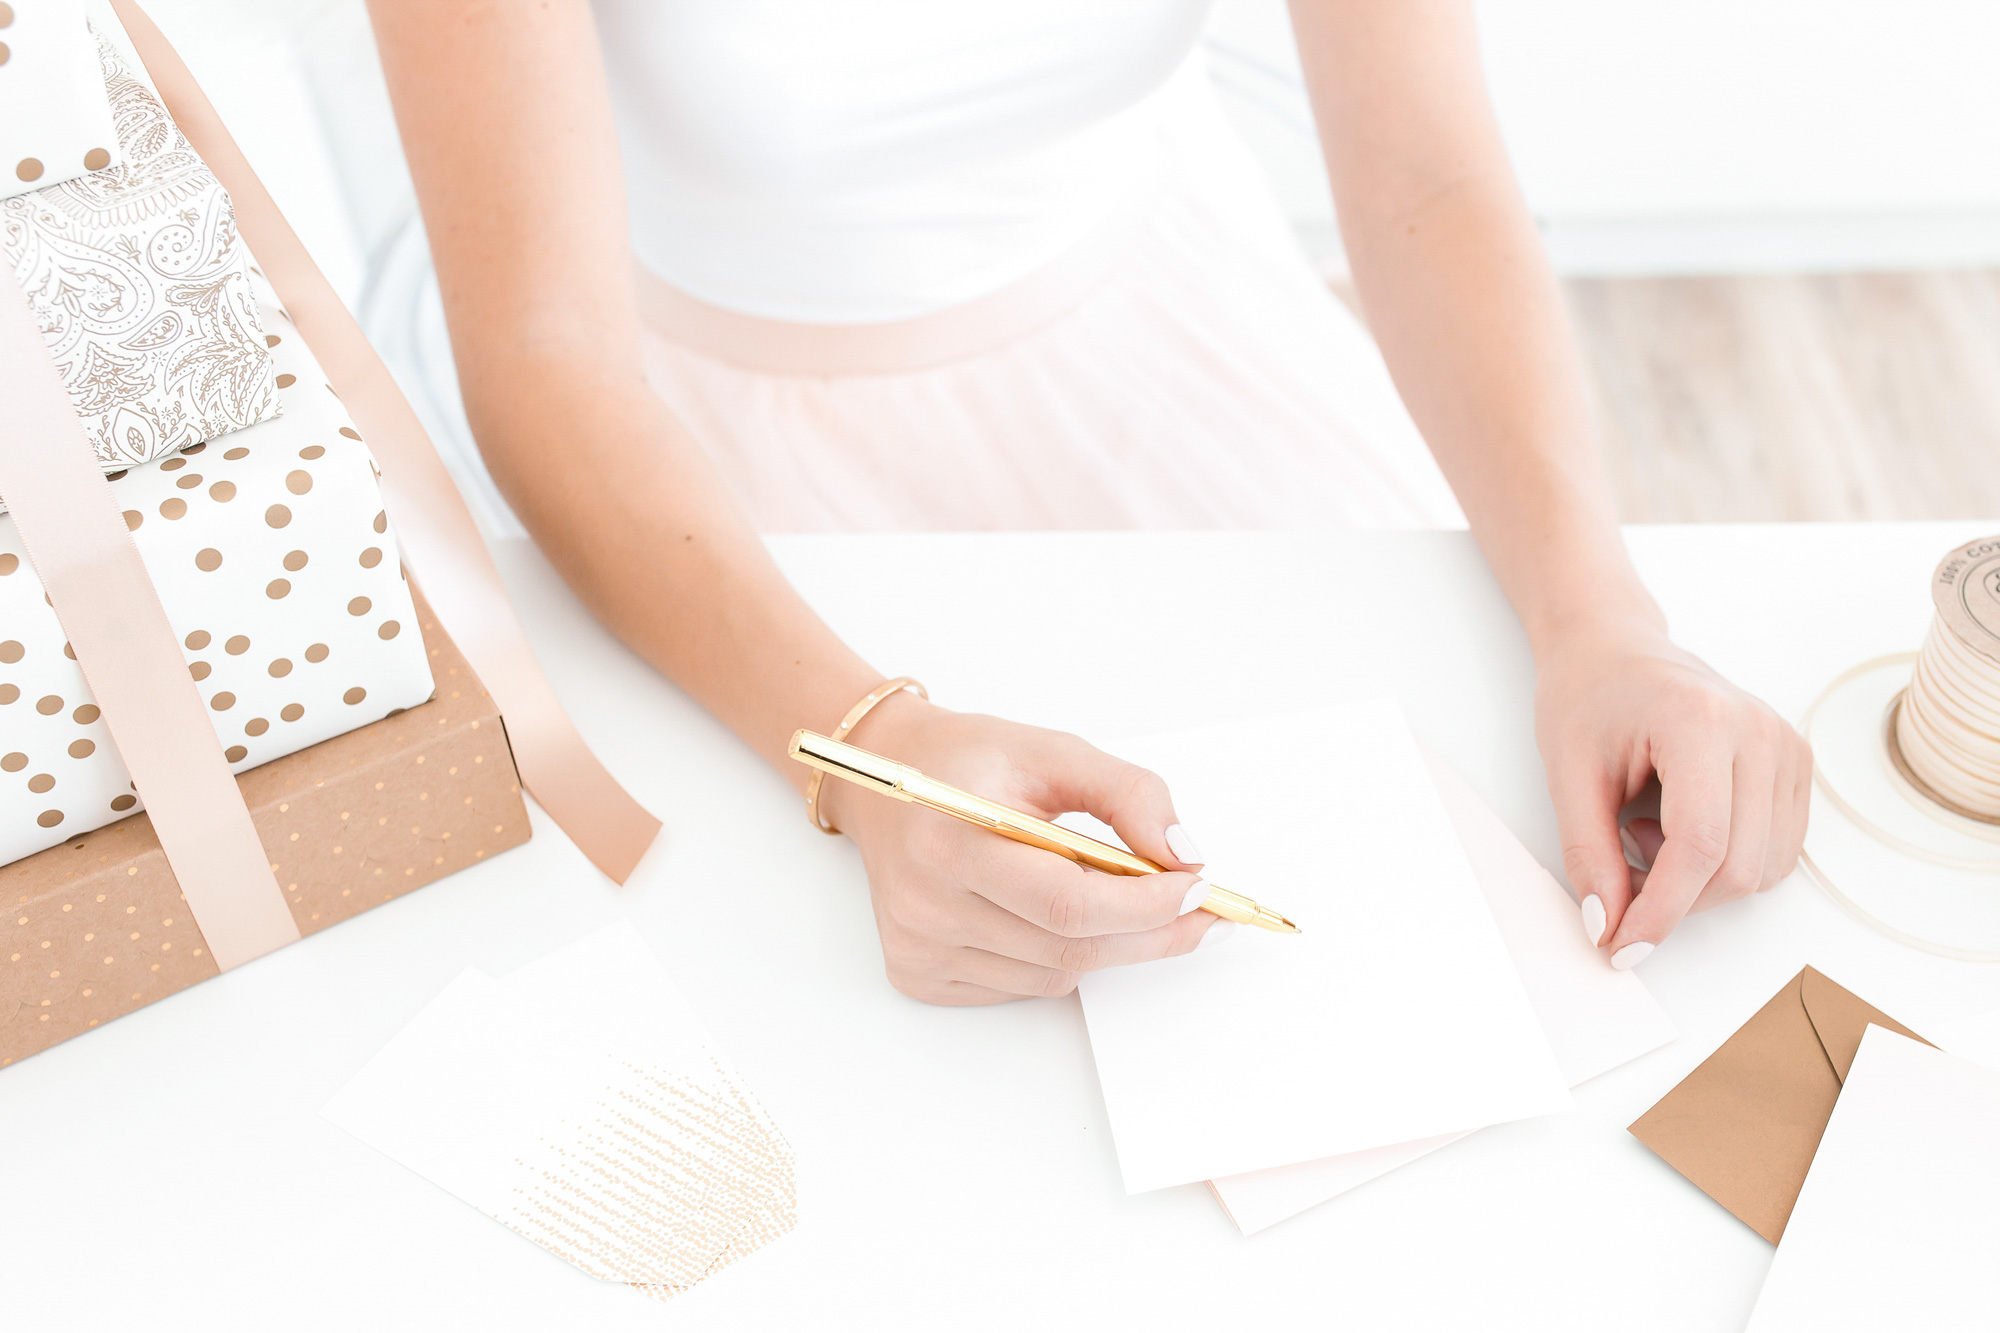 WHO IS RIGHT FOR YOU? - A whole host of people can help bring your event dreams to life, but it can be tricky to discern what help is right for you.